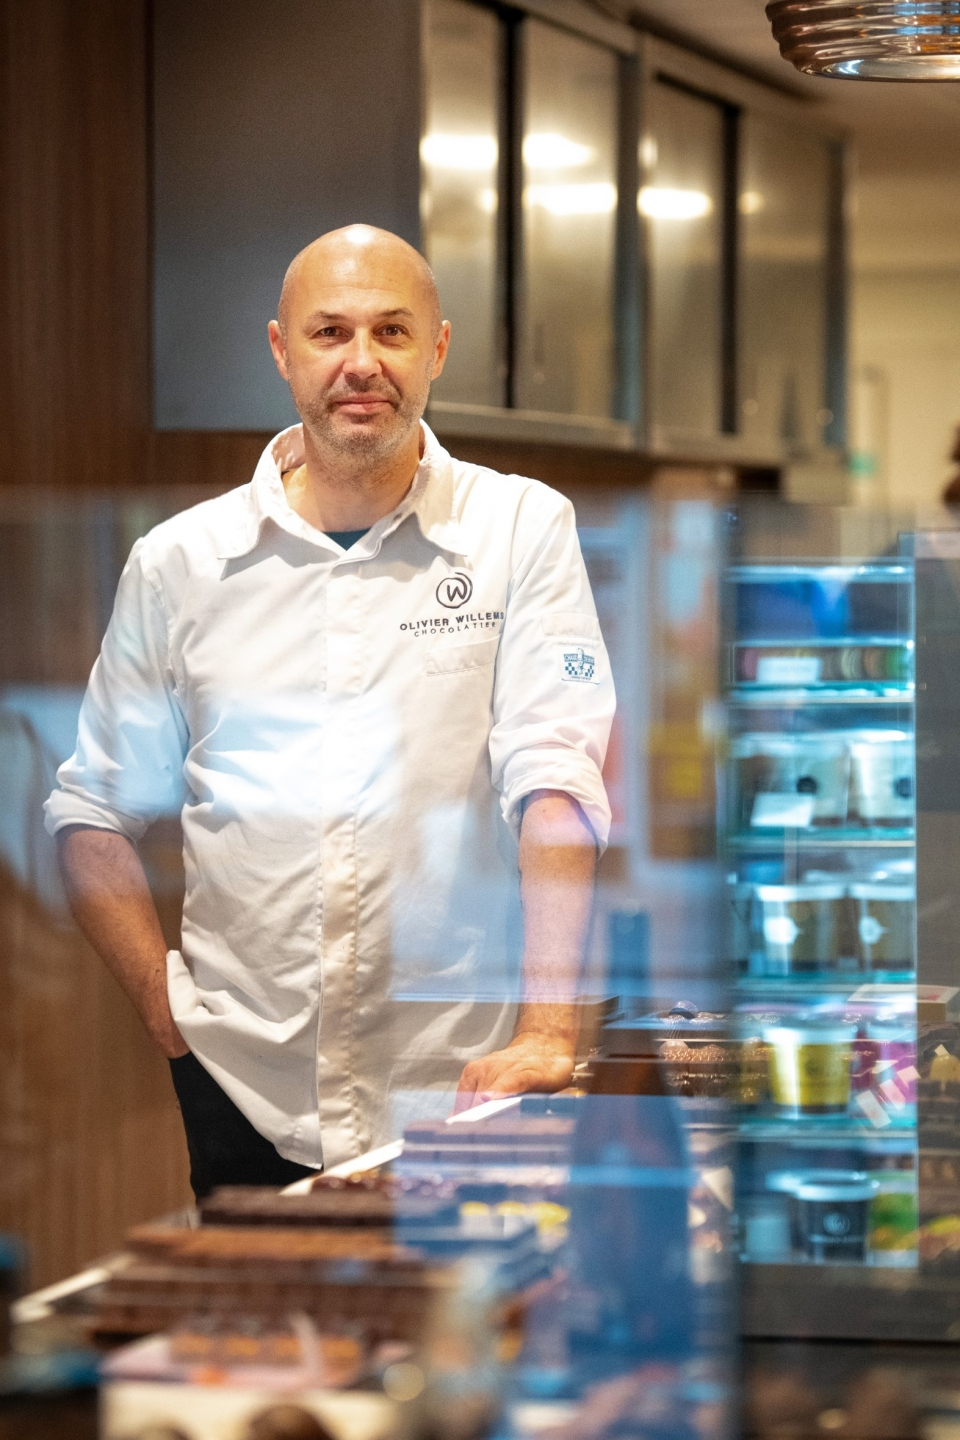 Kustambassadeur Olivier Willems van Chocolatier Willems